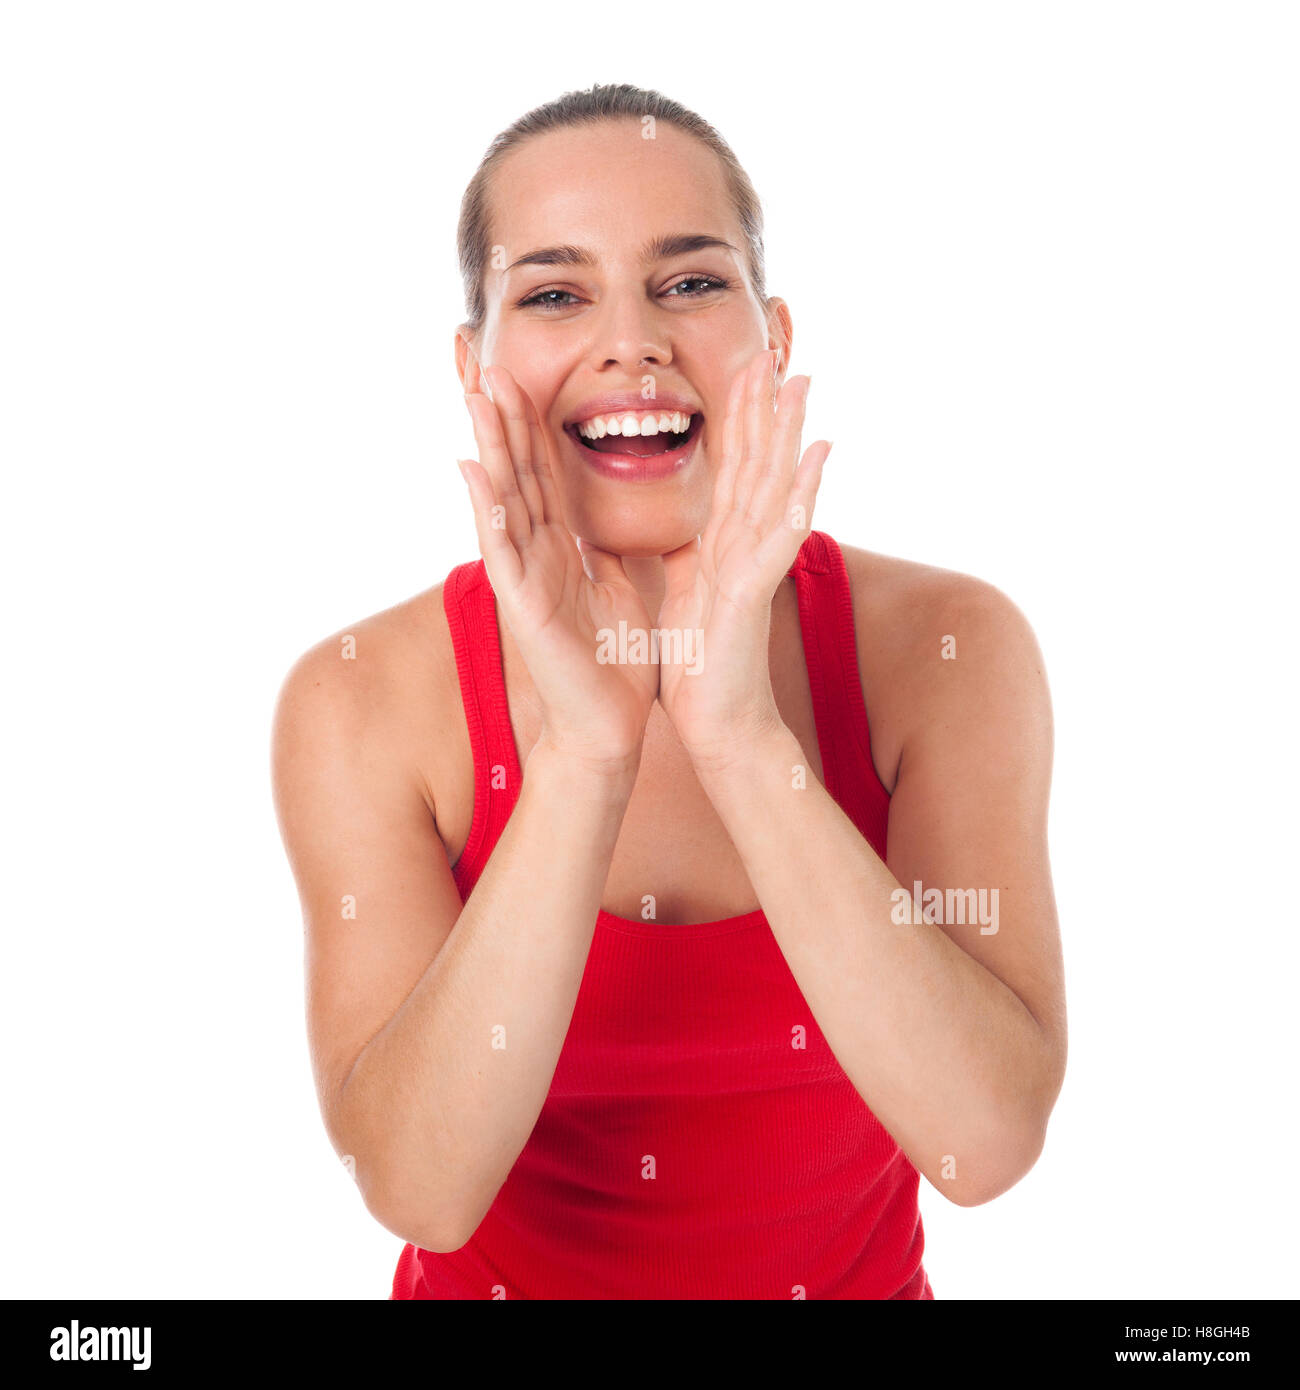 Young woman saying something with opened hands around her mouth, isolated on white - Stock Image